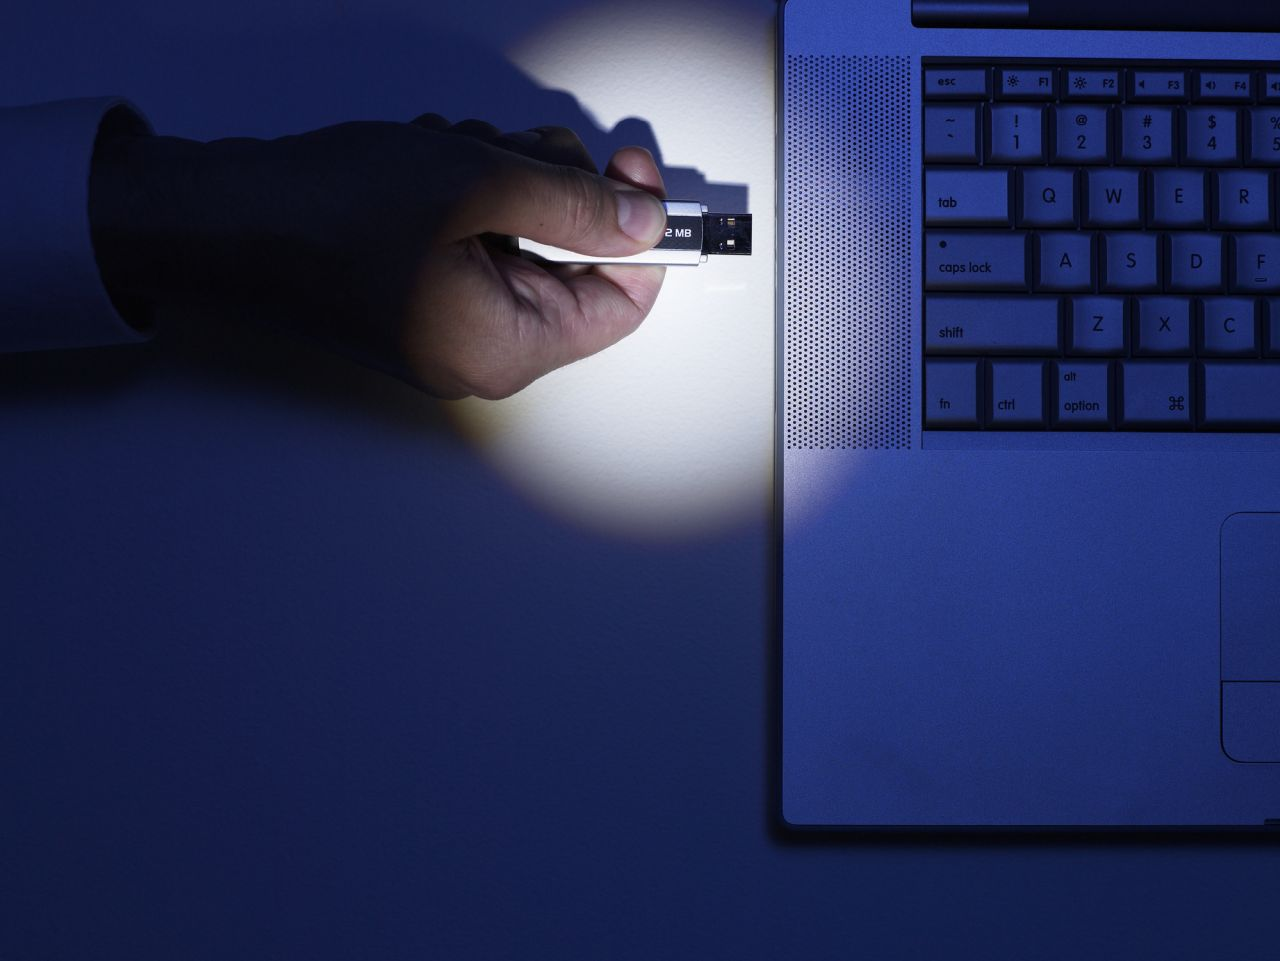 Image of using a thumb drive on a laptop